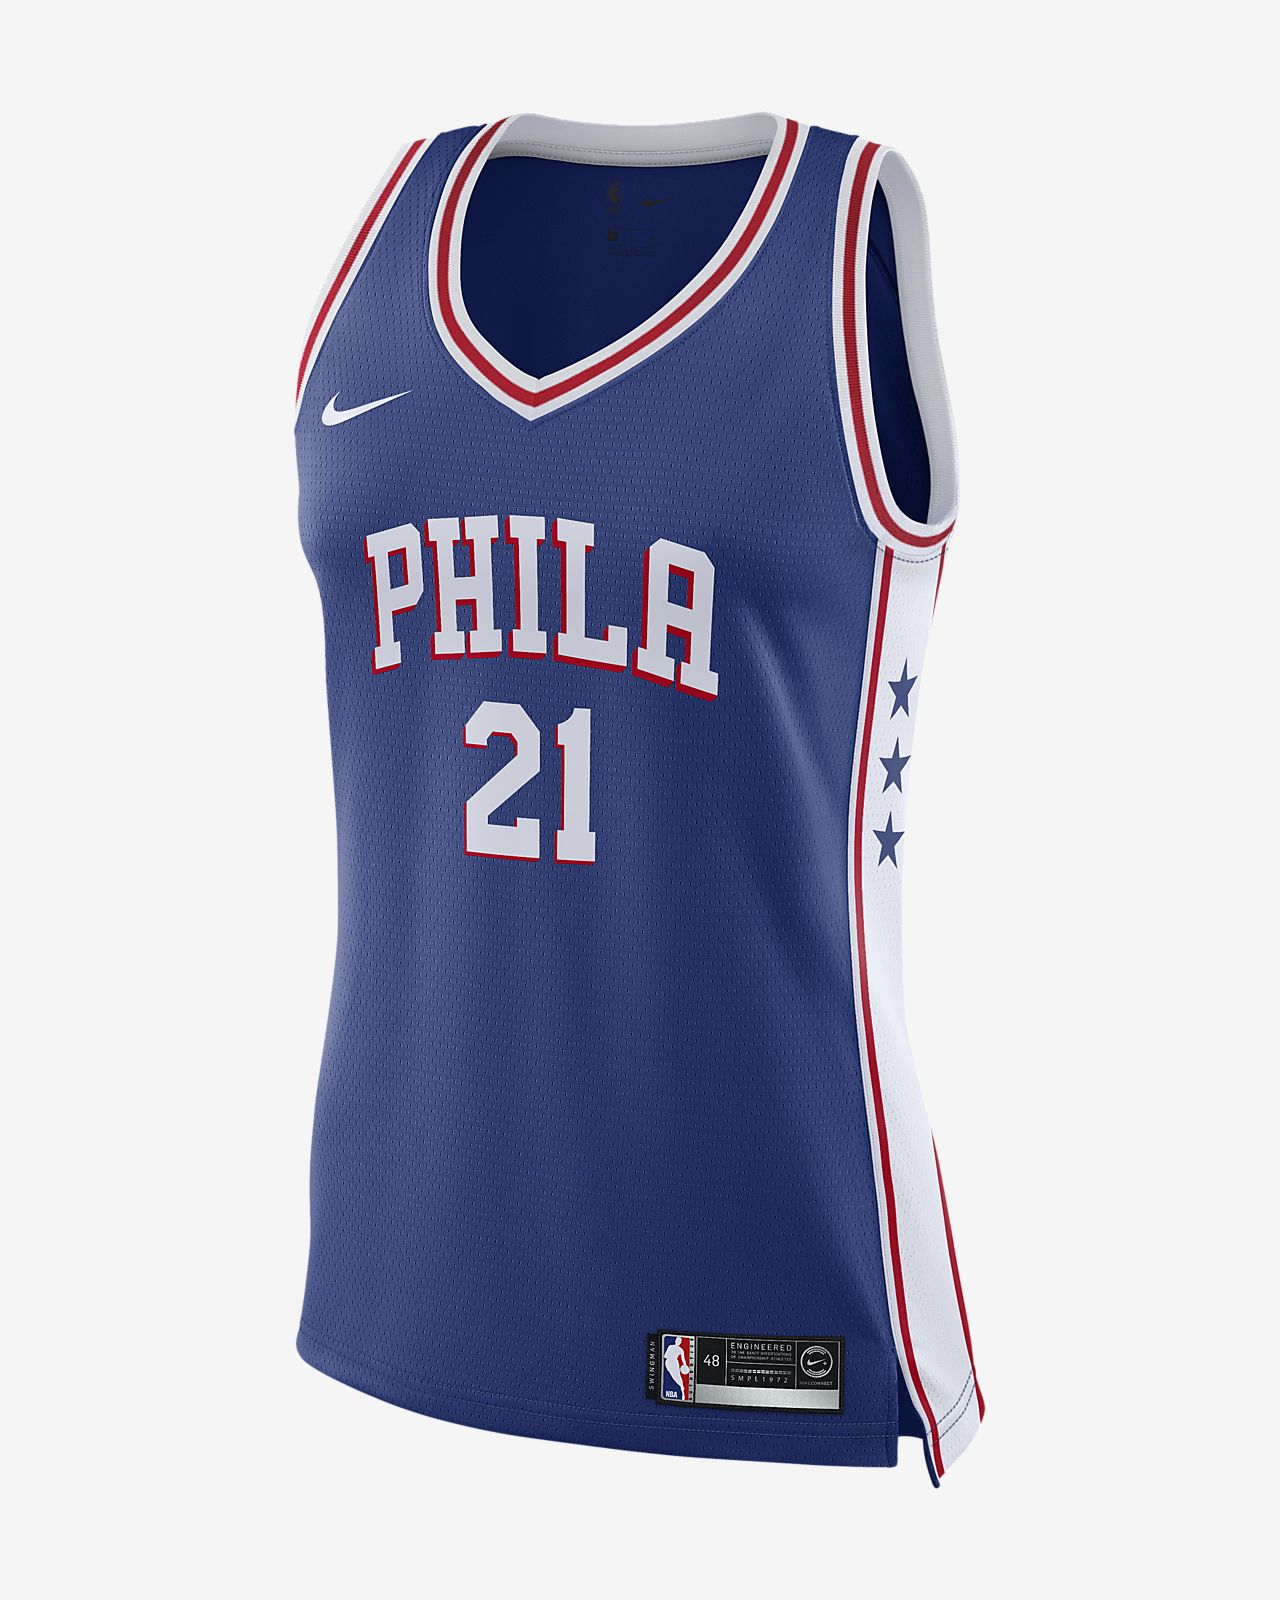 Women s Nike NBA Connected Jersey. Joel Embiid Icon Edition Swingman  (Philadelphia 76ers) a2254ec2f